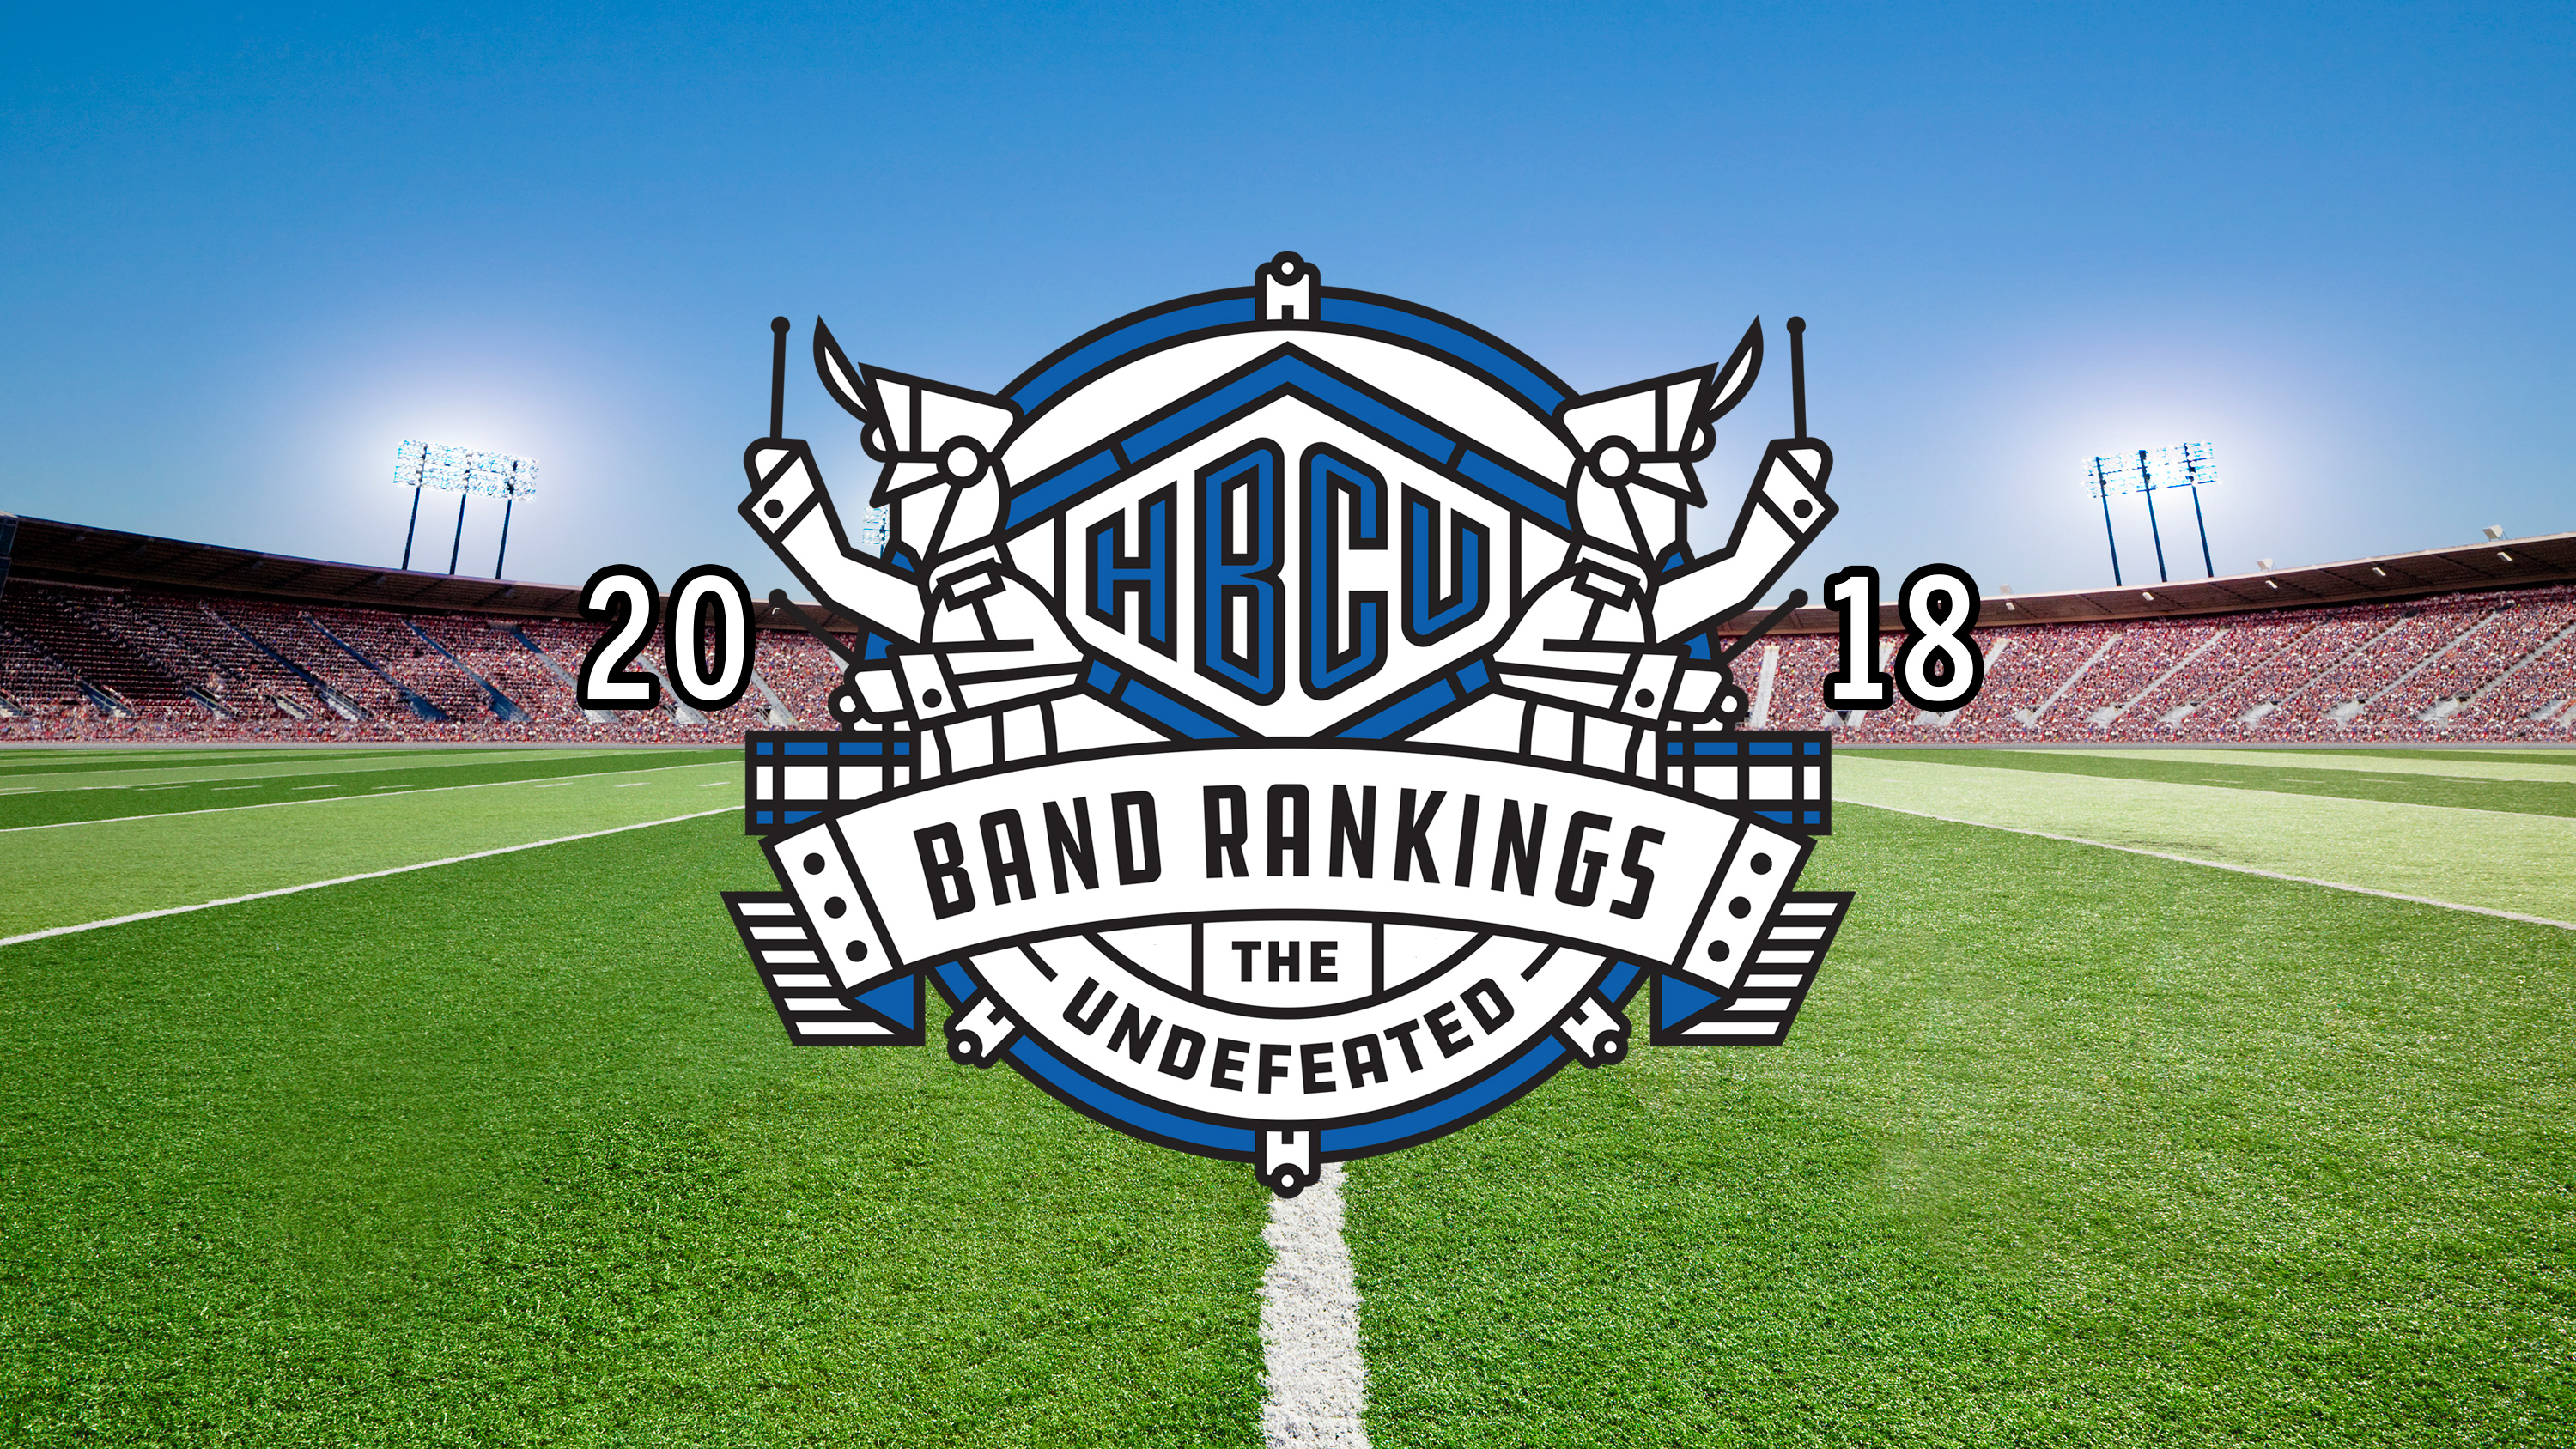 HBCU Band Rankings 2018_lede_grass